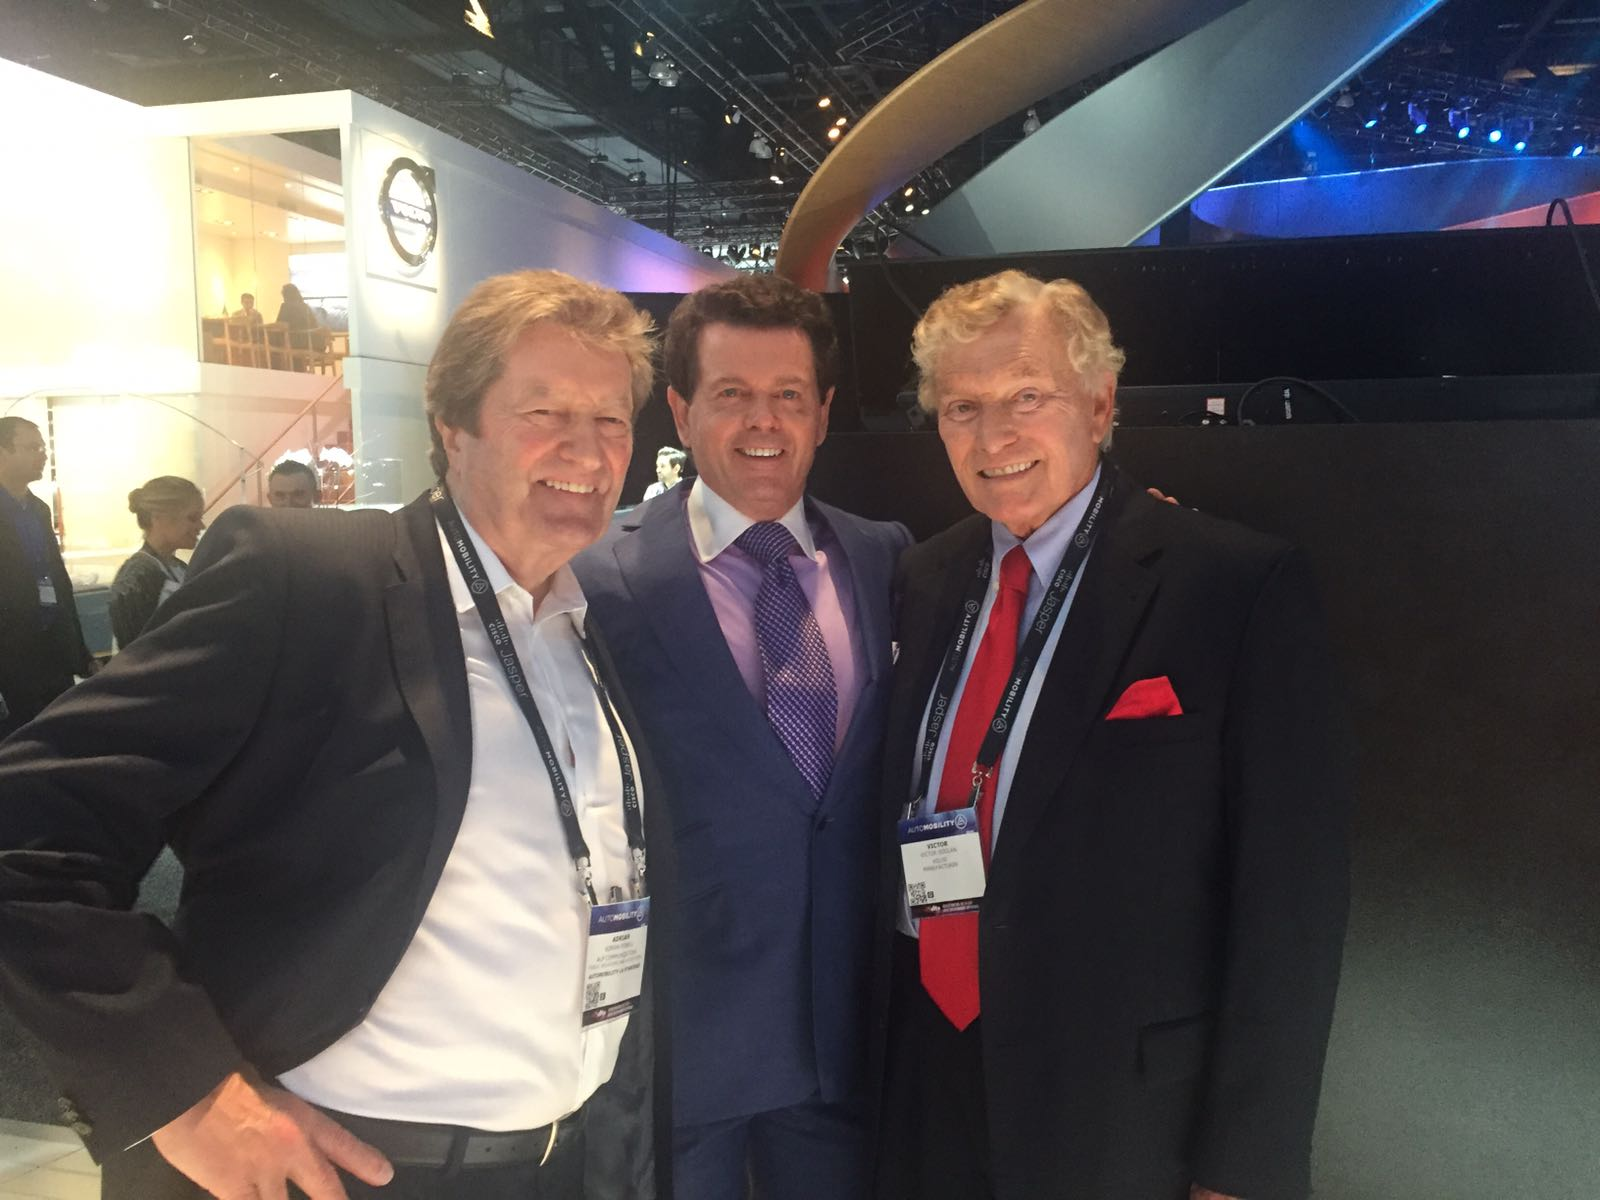 LIASE Group Non-Executive Board Member, Vic H. Doolan (right), poses for a picture with Gerry McGovern, Land Rover Chief Design Officer (center).